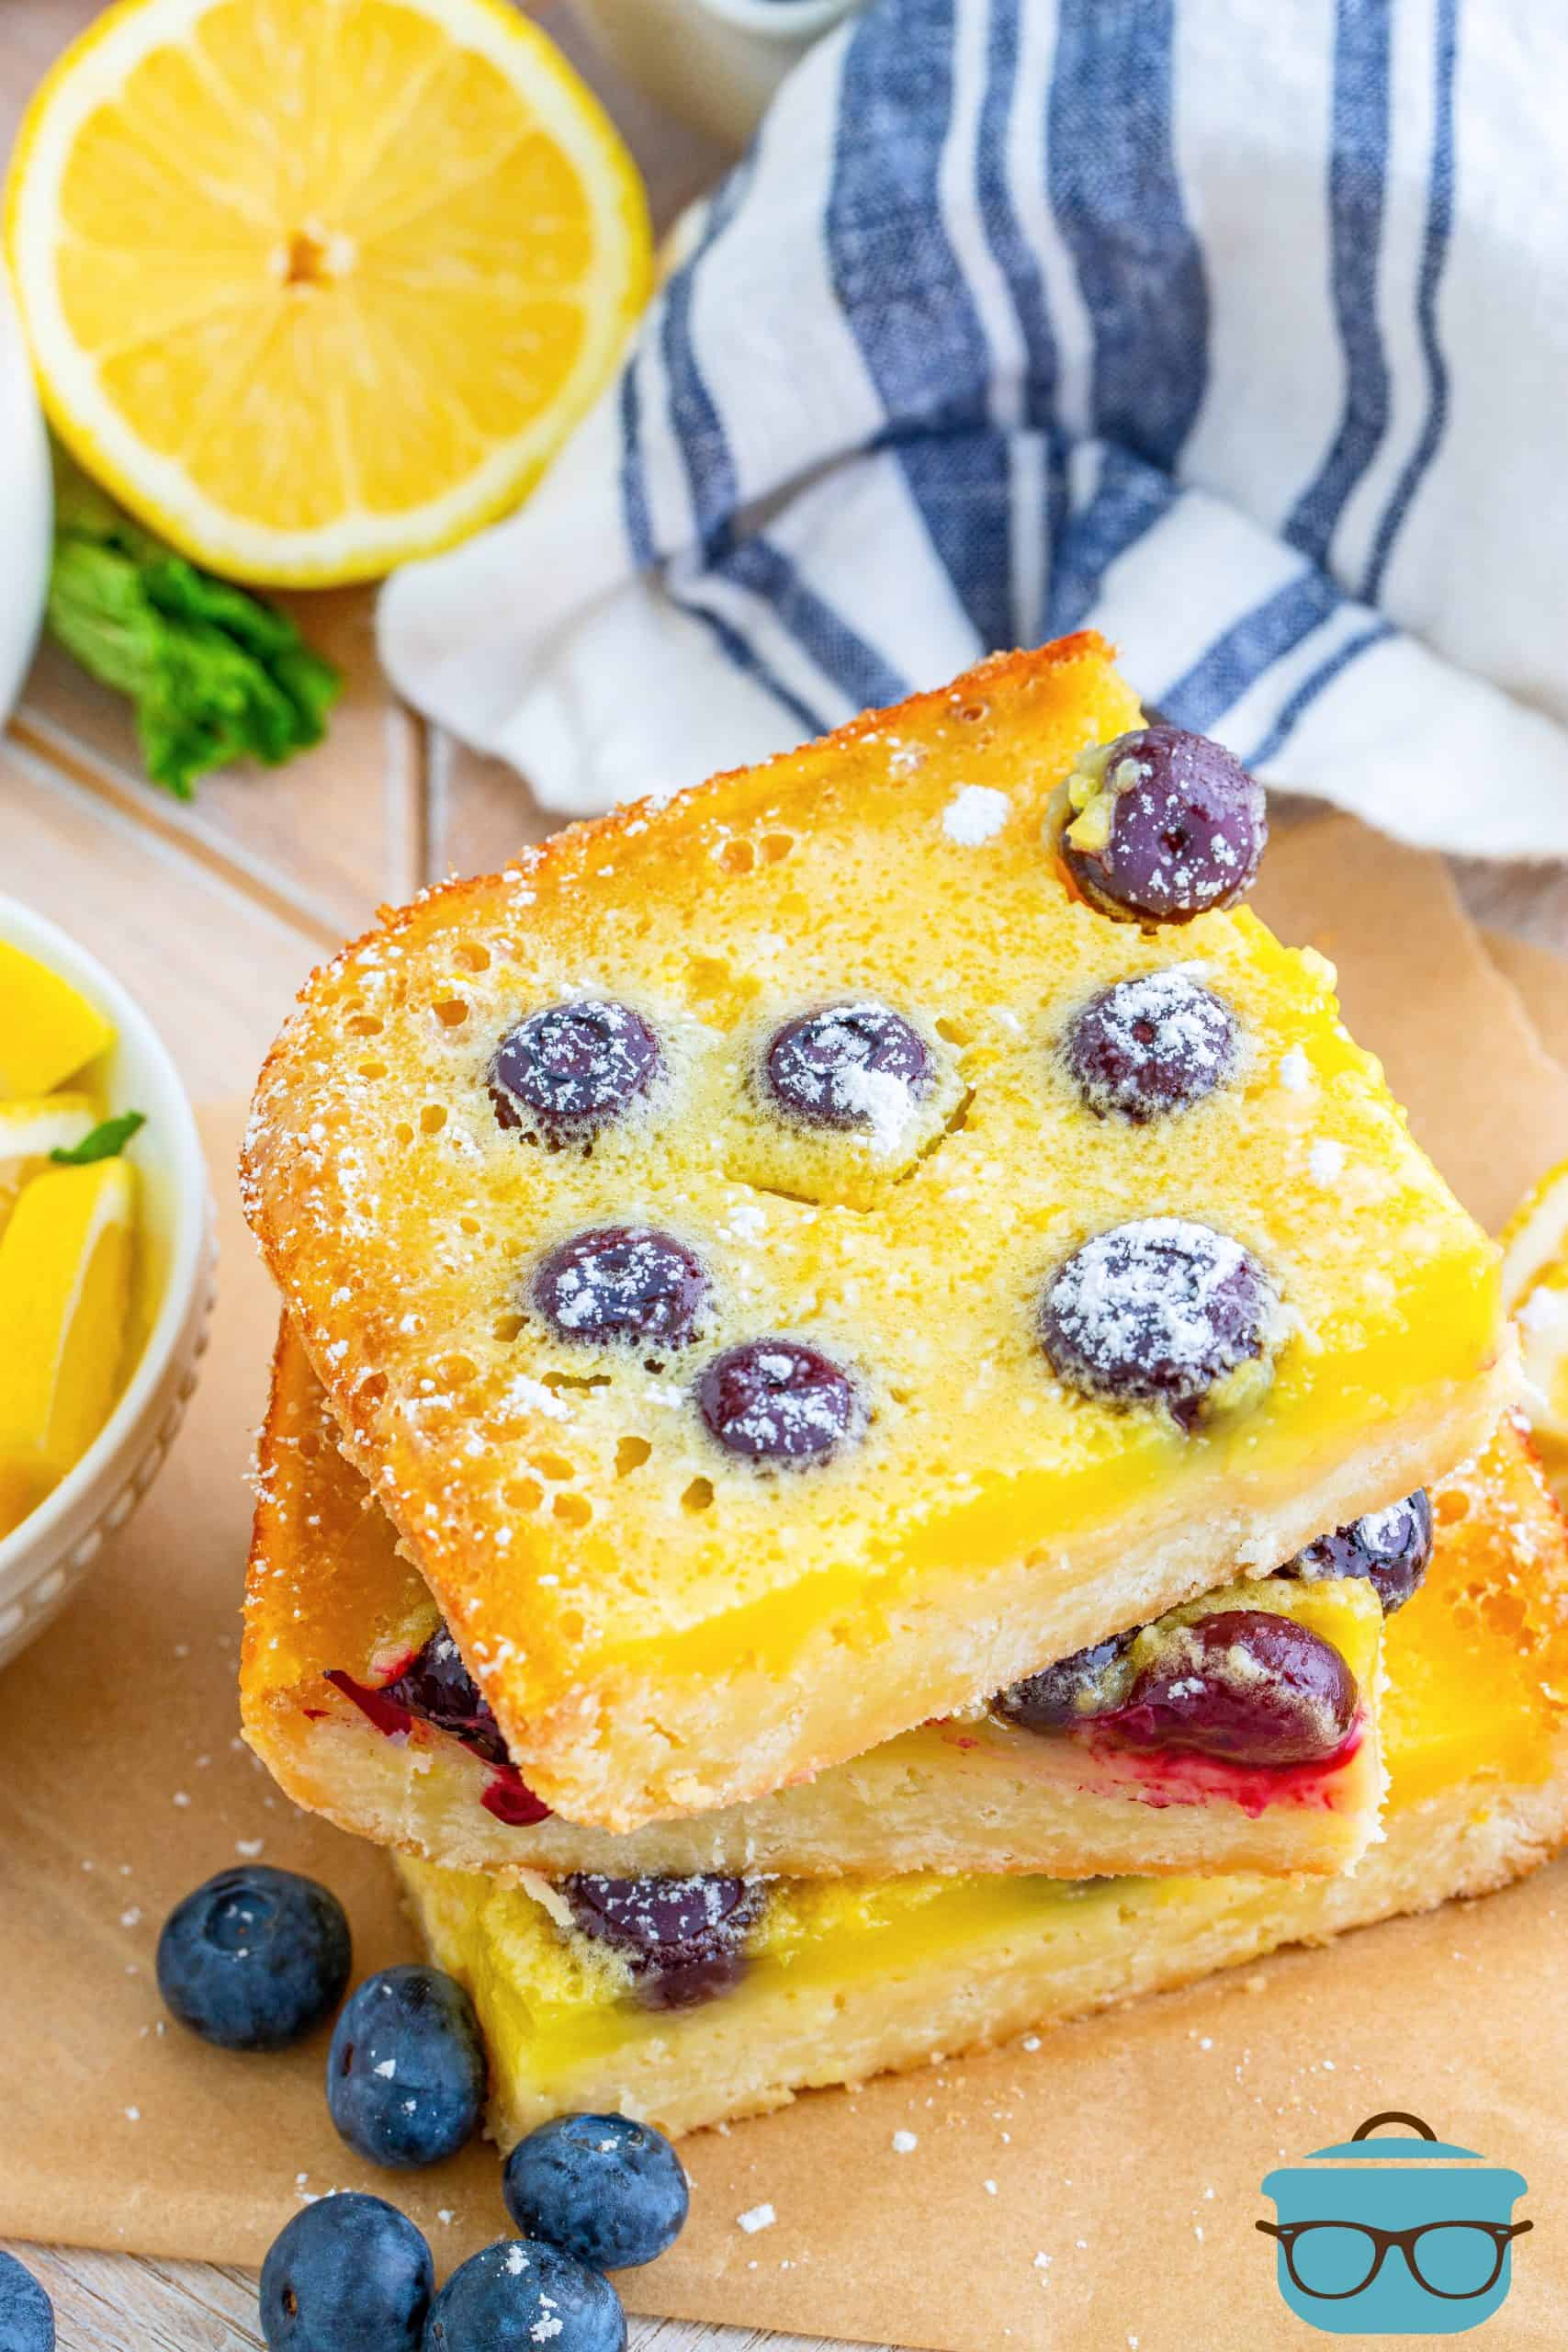 Overhead photo fo stacked Blueberry Lemon bars surrounded by blueberries on wooden board.